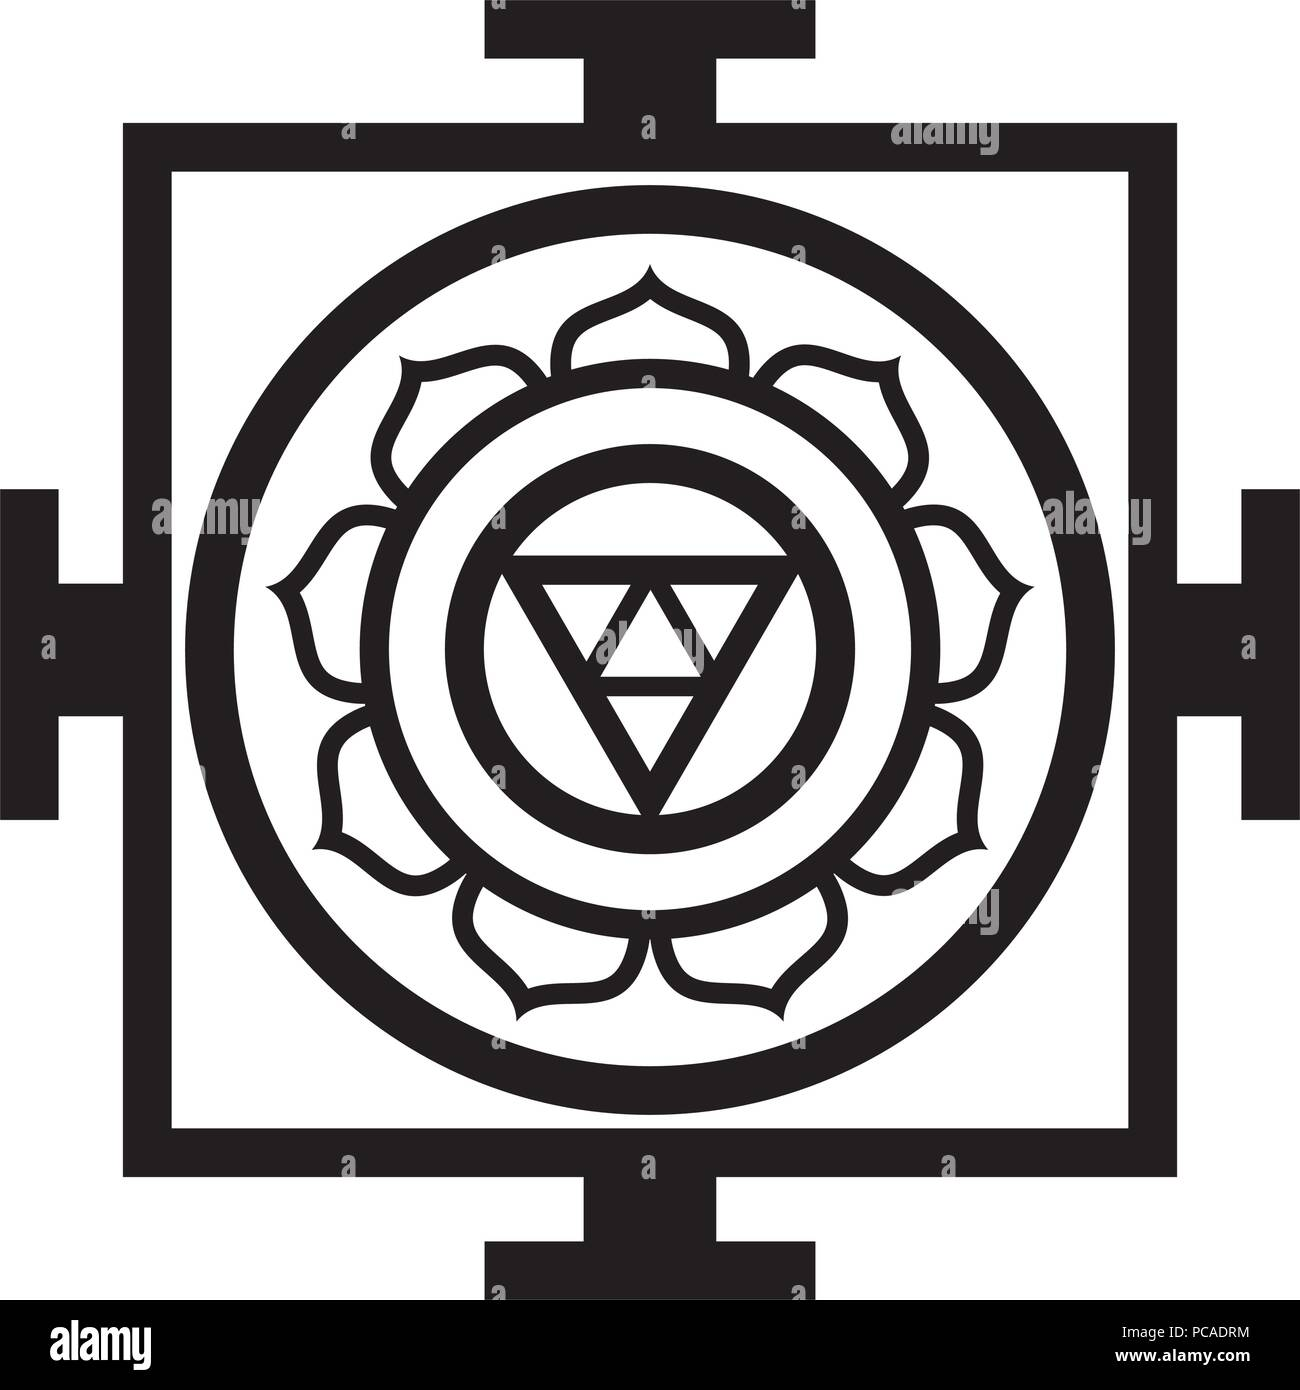 Mandala — sacred space, spiritual and ritual symbol in Buddhism, representing sacral model of the structure of Universe, the chart of Cosmos. - Stock Vector